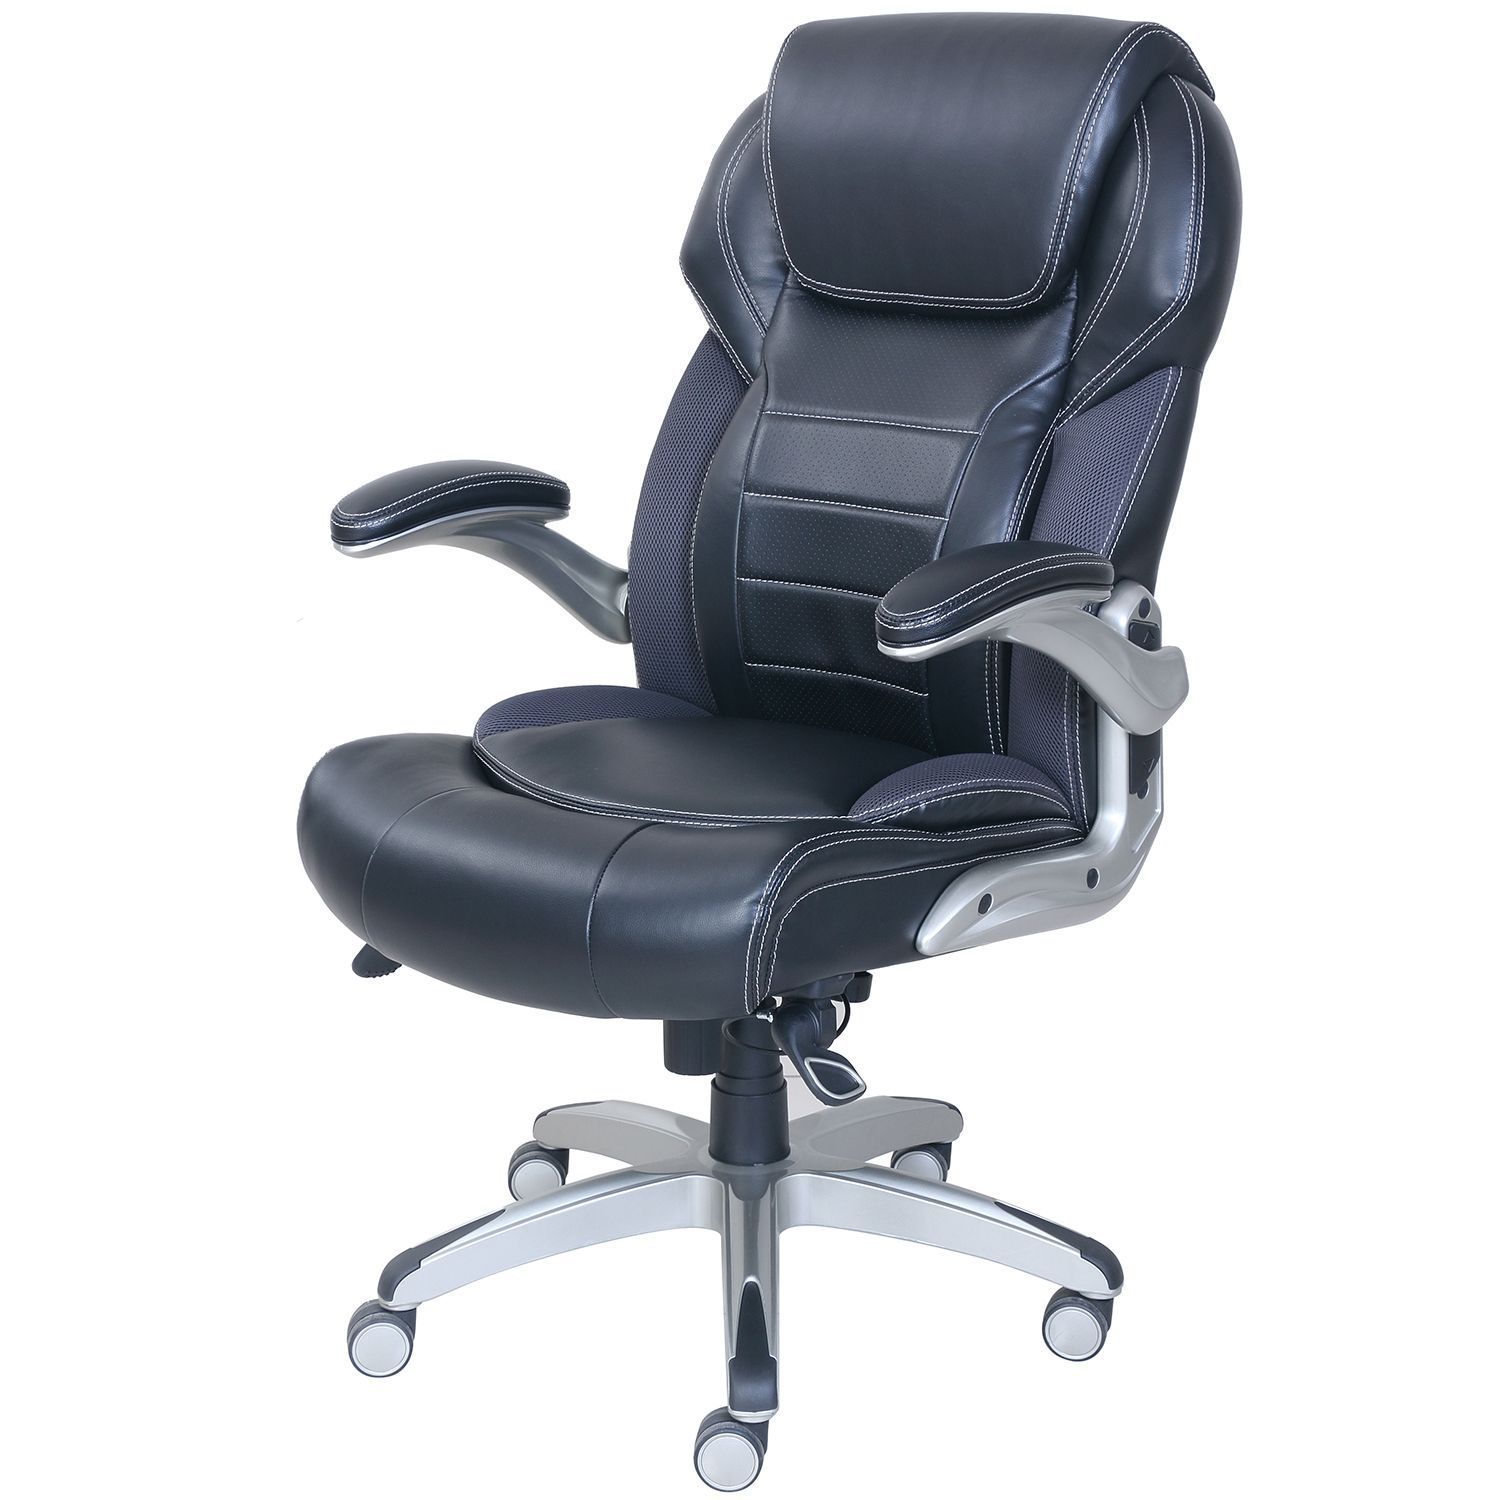 ollies no club elastic must repair tables high mesh awesome walmart support of lfwggamidbacksupermeshofficechairw mesmerizing you arms full chairs with and seat for mainstays sams executive best covers s that back see sam chair office review size